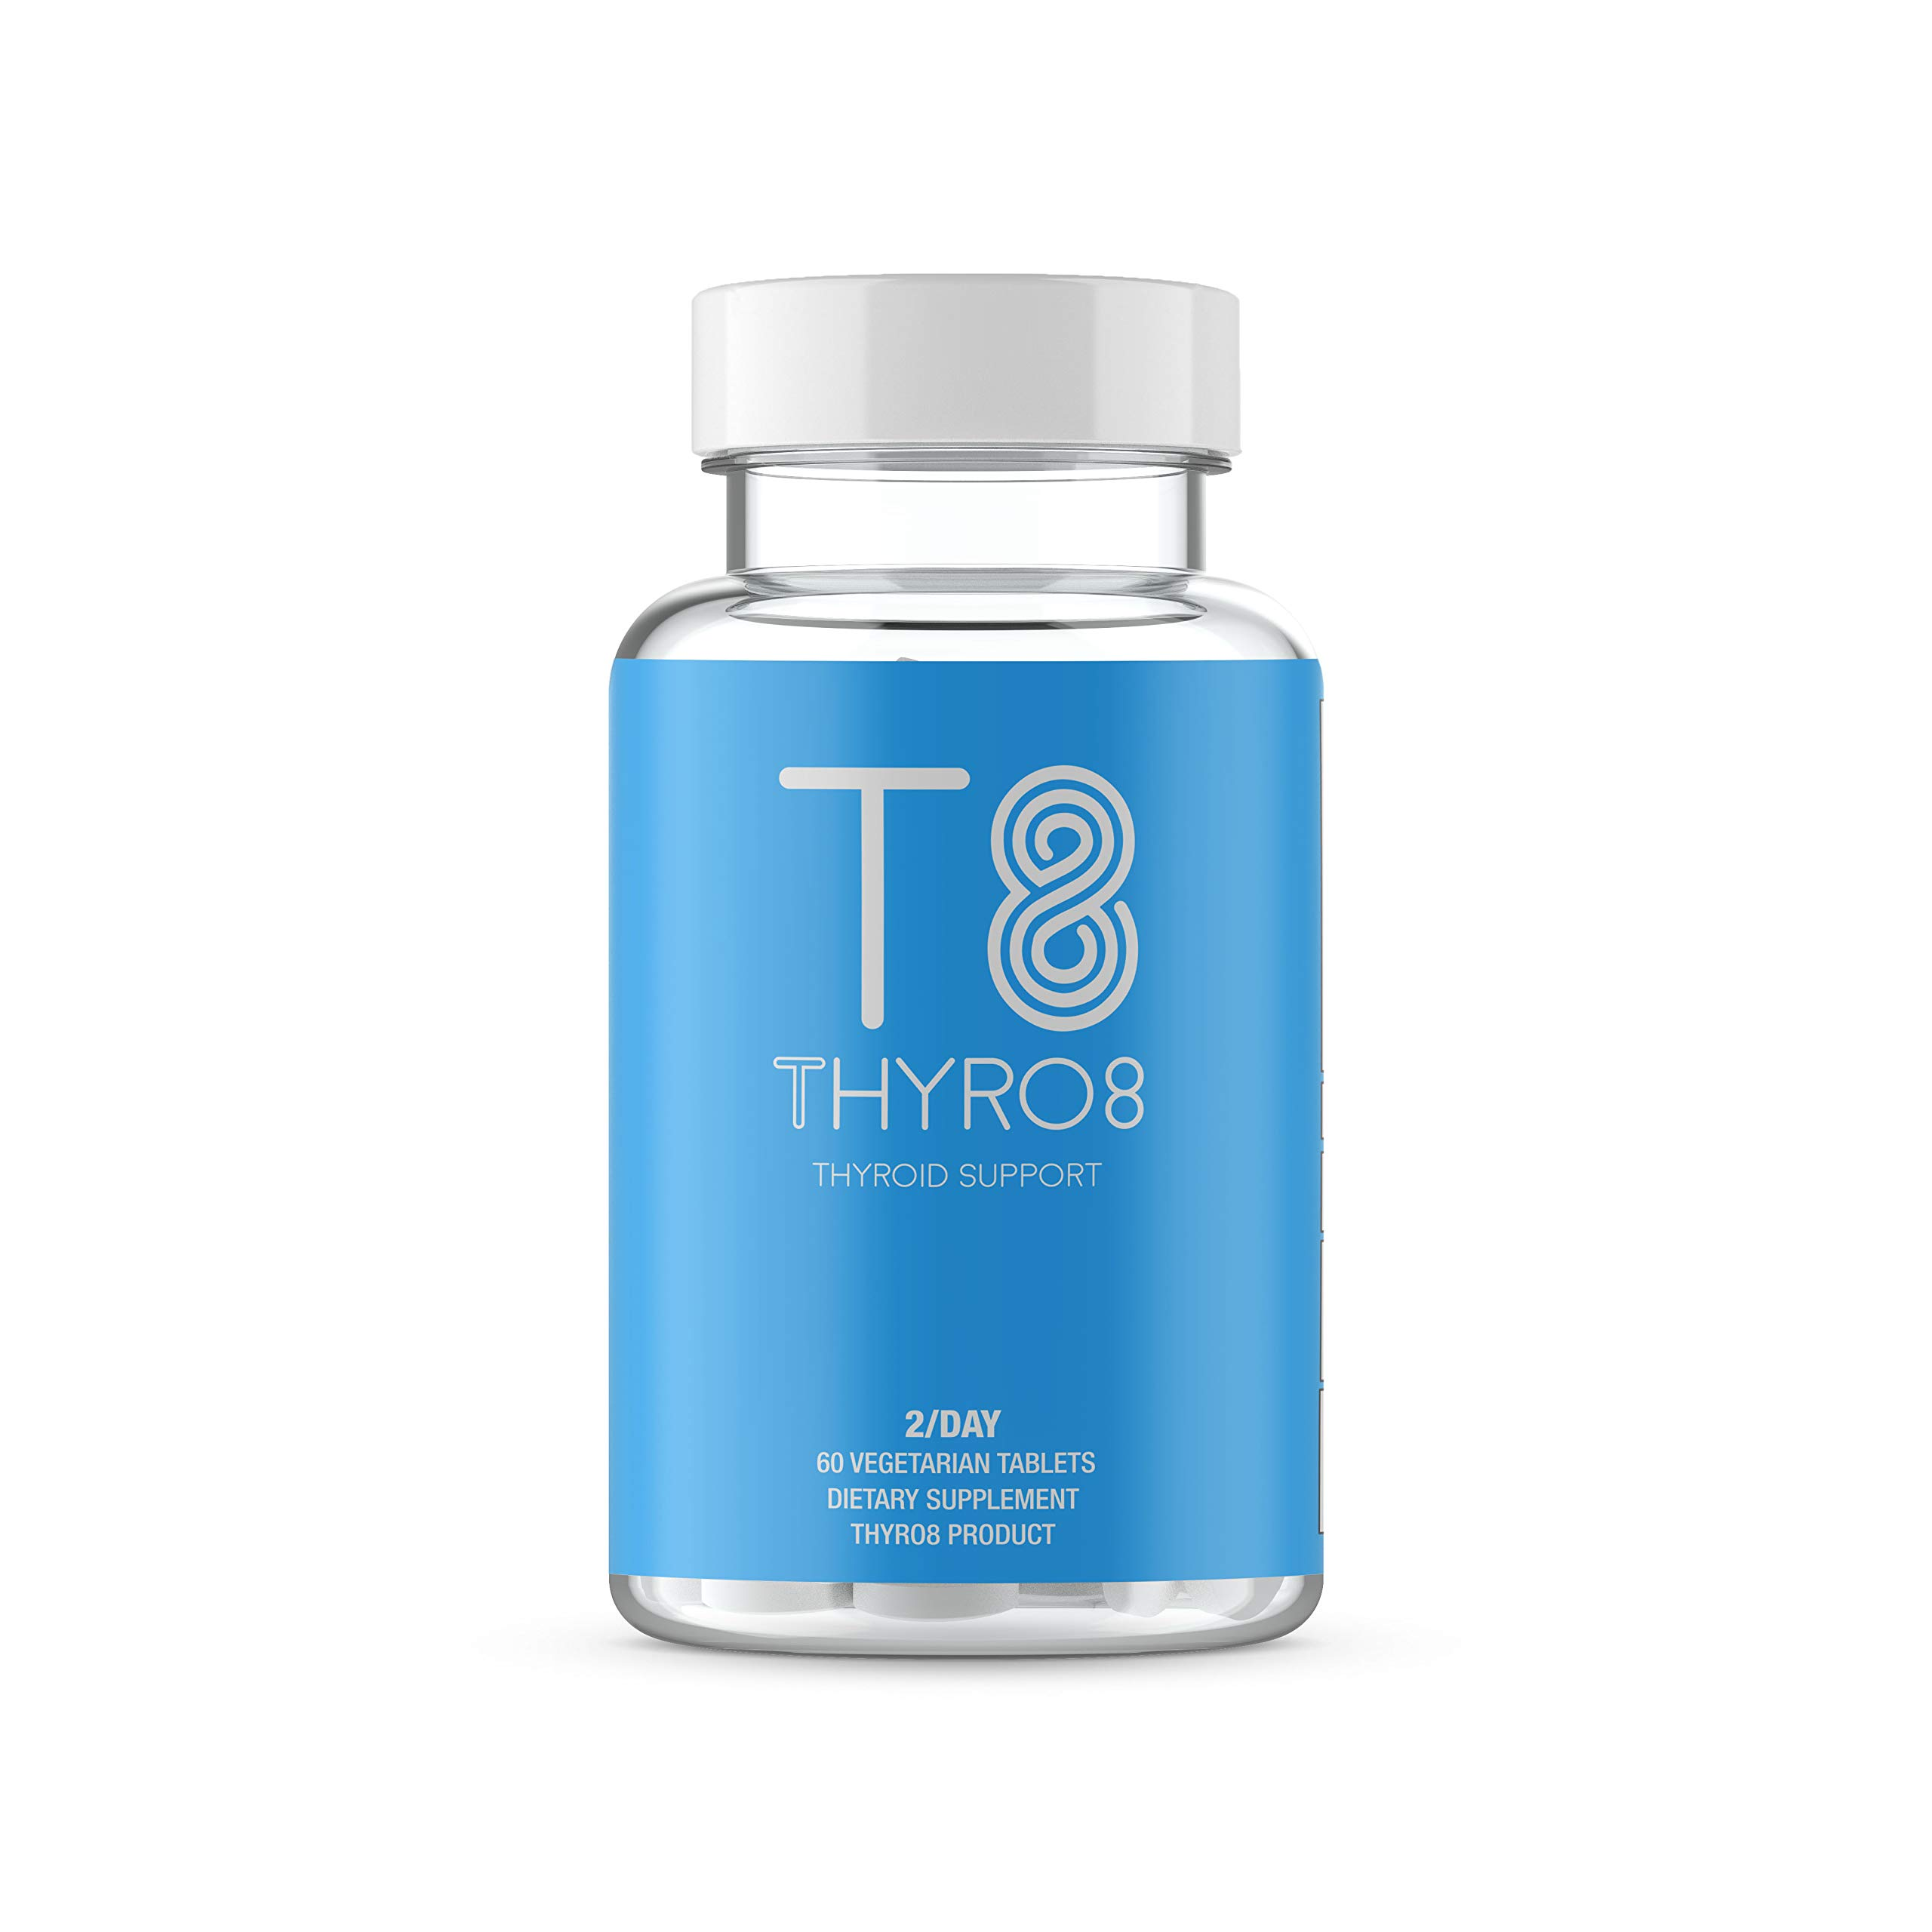 Thyroid Support Supplement T8 With Iodine - Feel Better Formula For Improved Focus, Metabolism, & Better Energy - 60 Tablets - 100% Money Back Guarantee